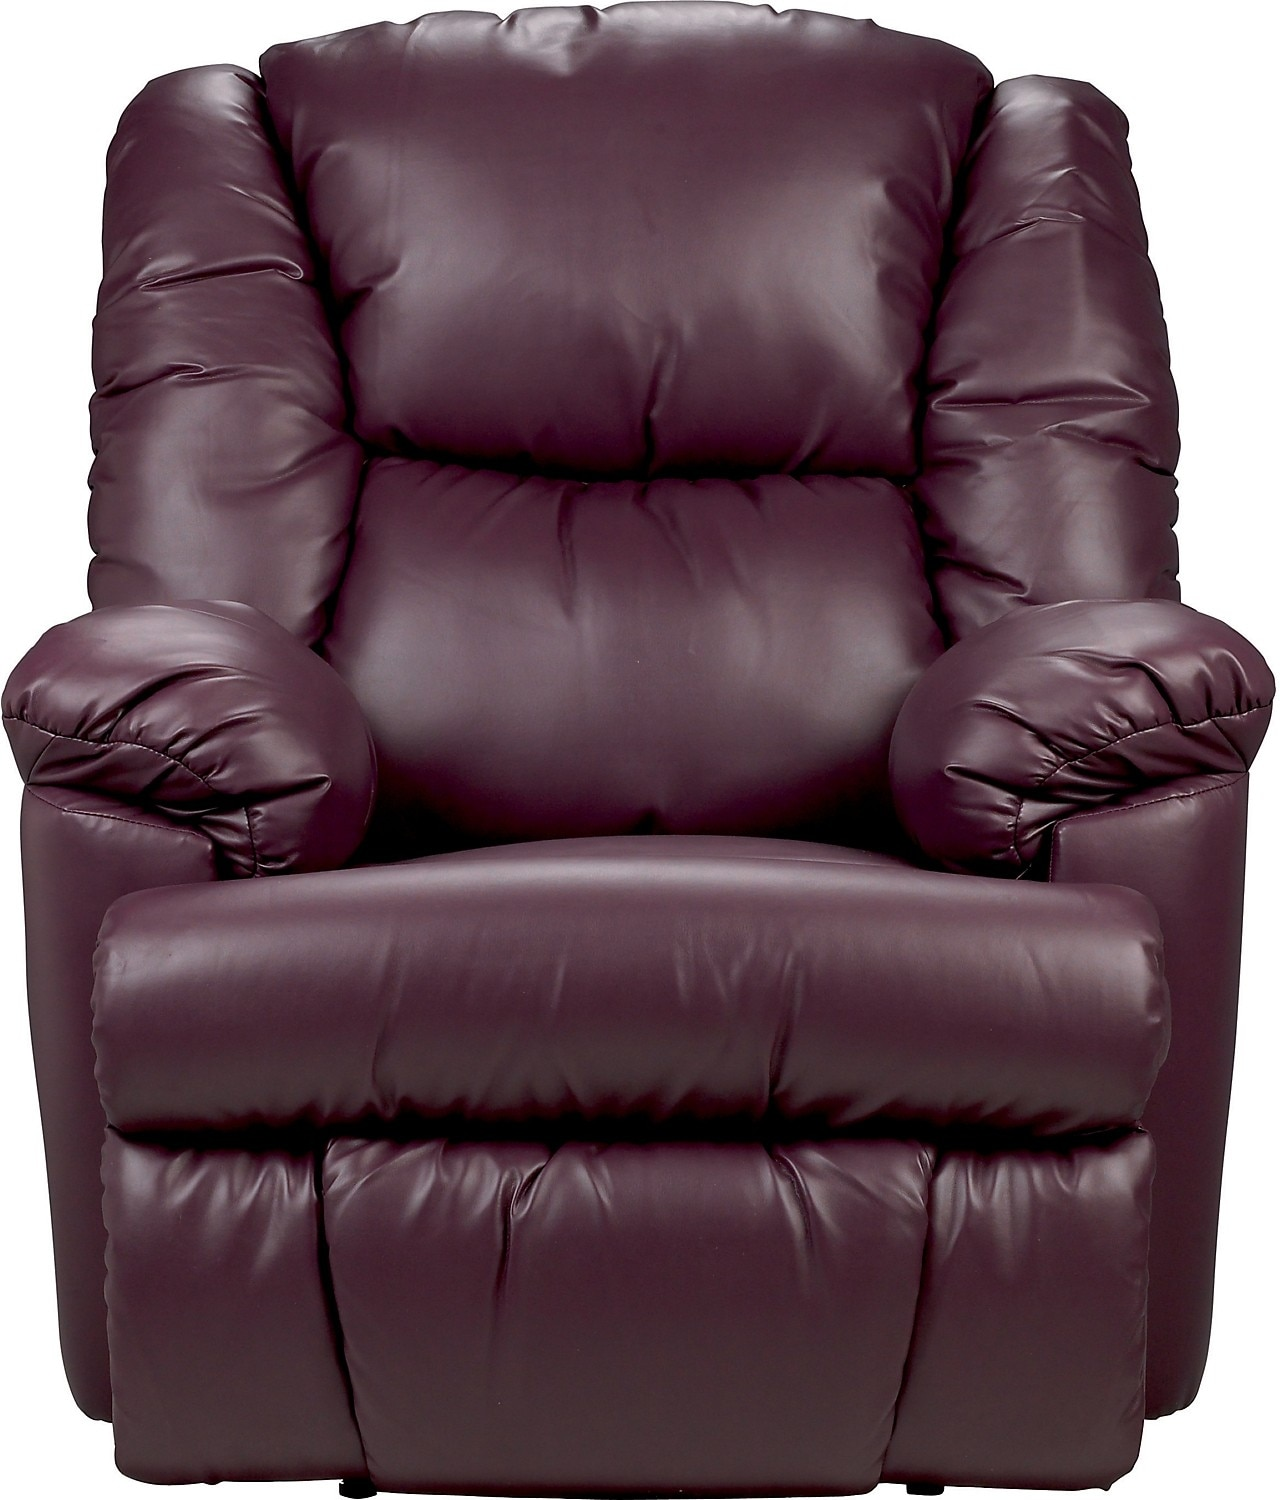 Bmaxx Bonded Leather Power Reclining Chair Purple The